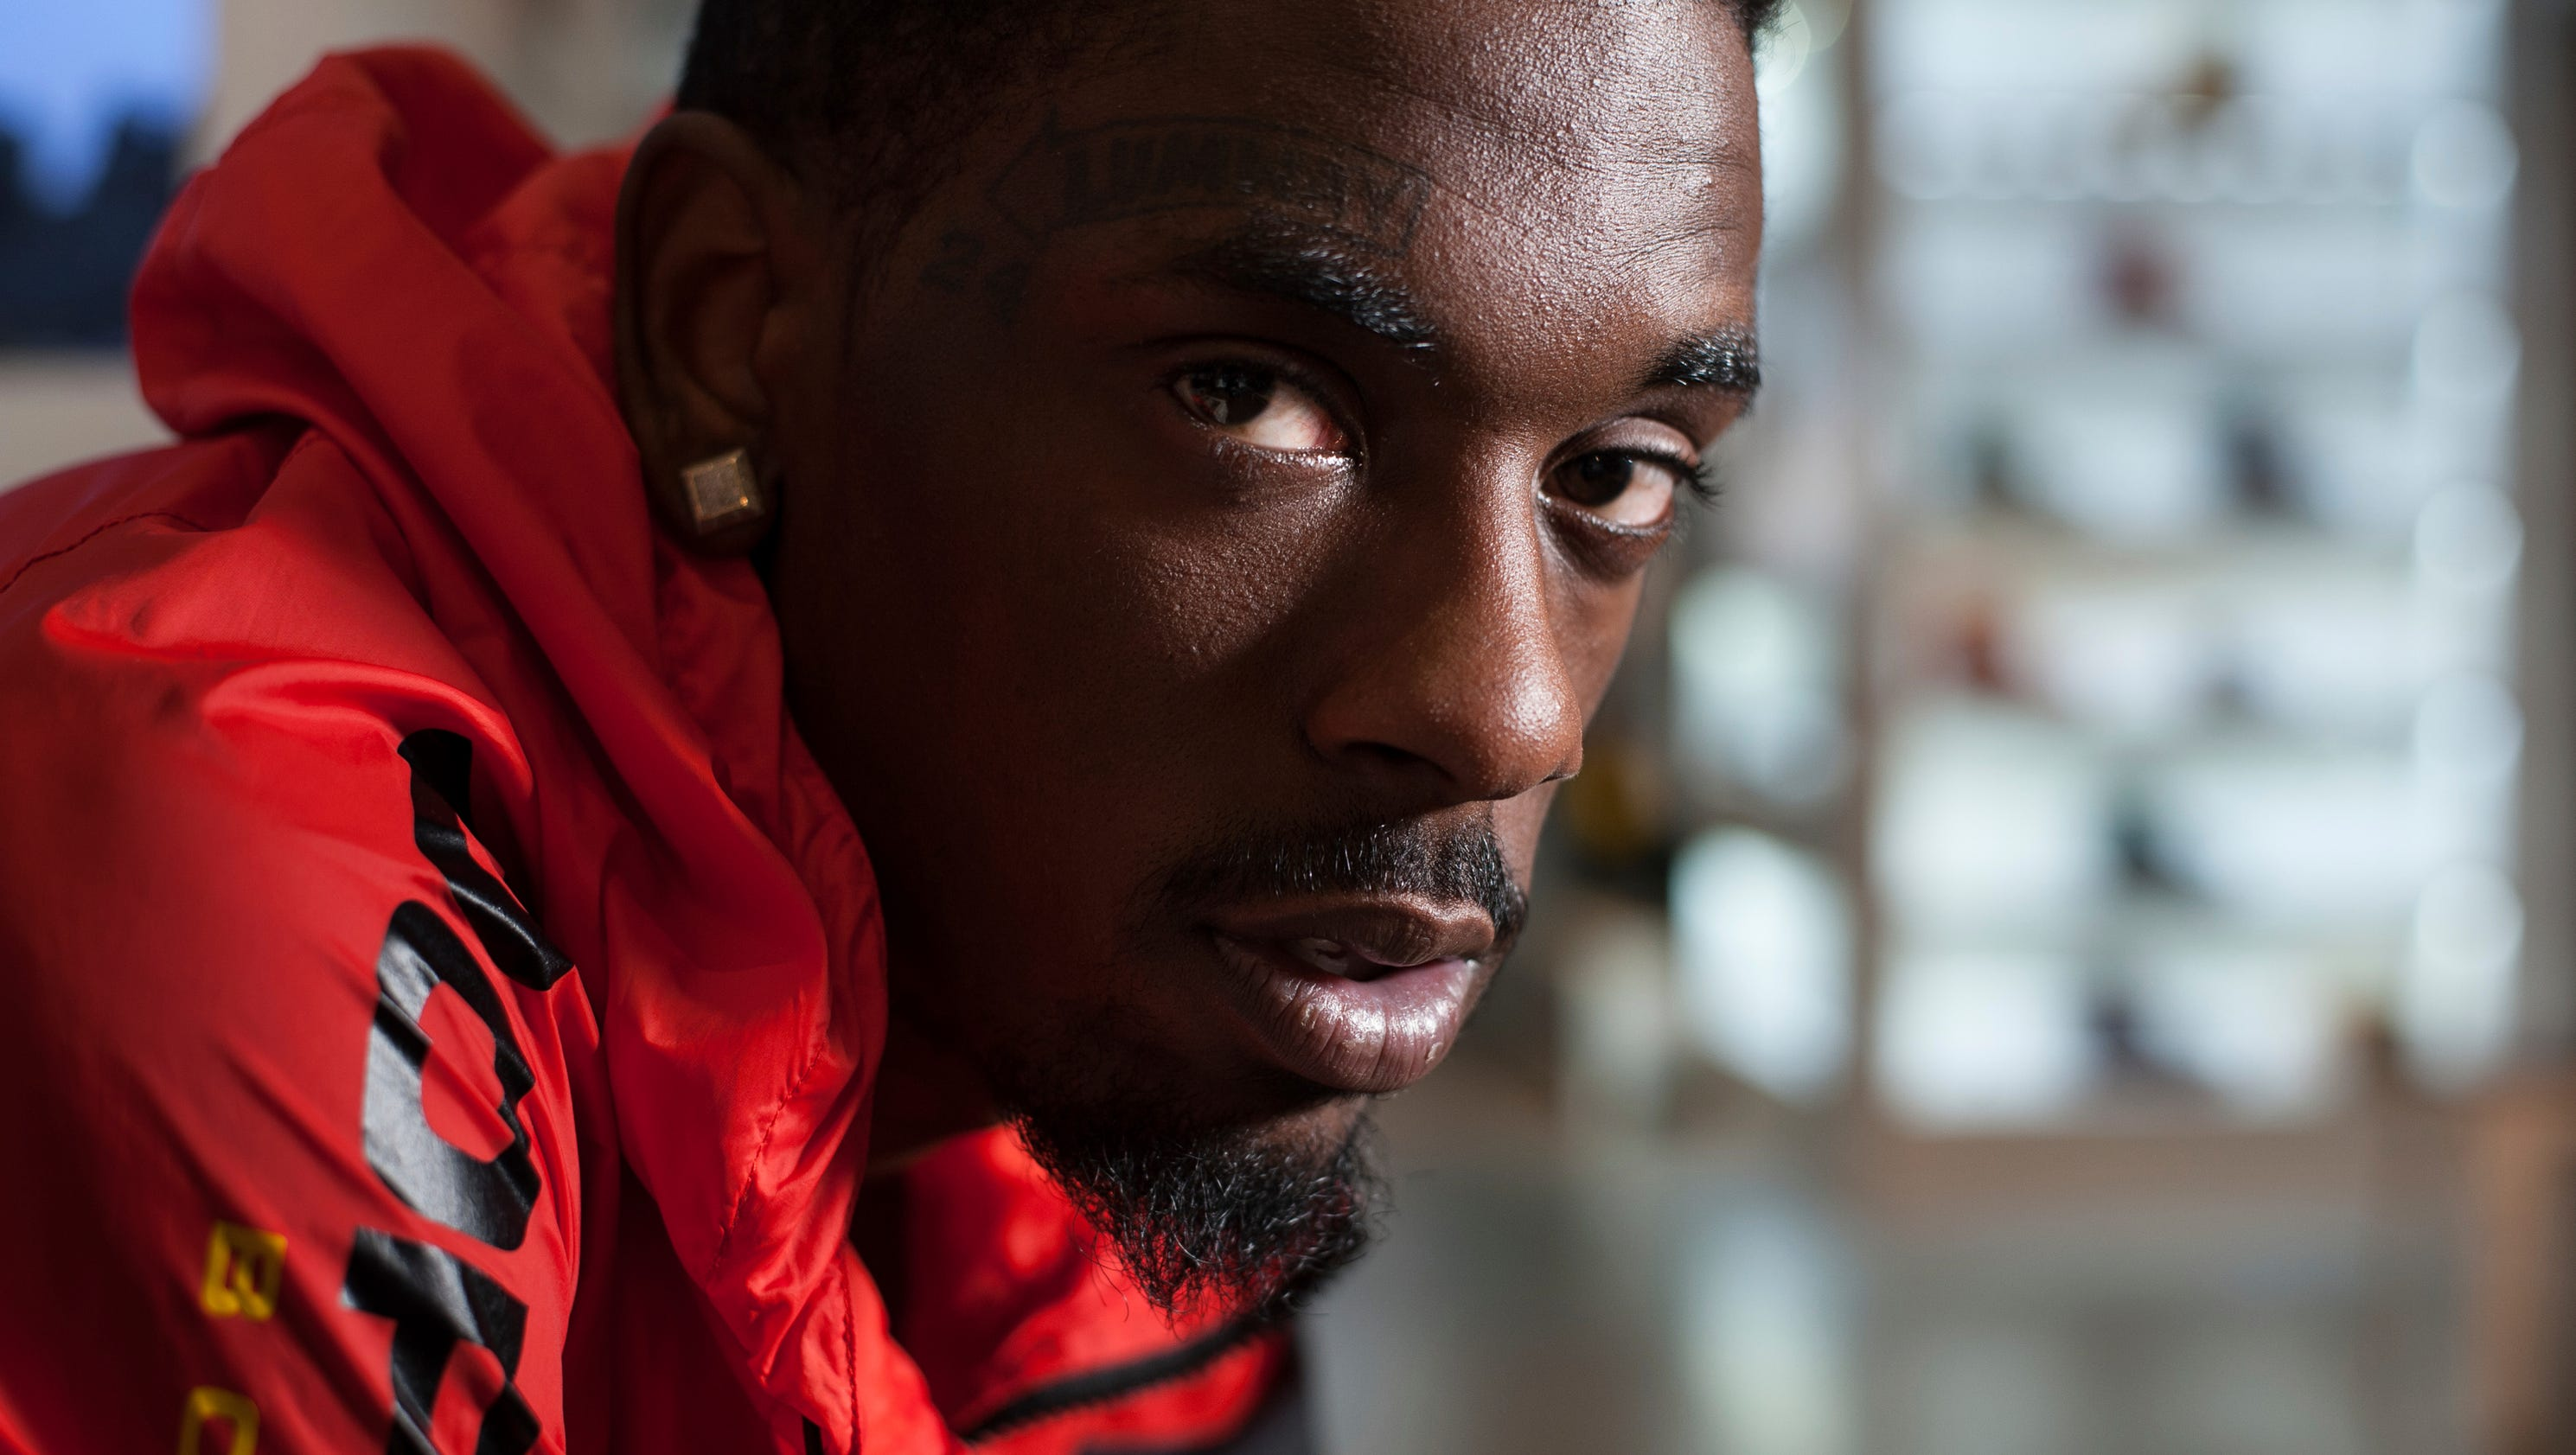 Rapper Jimmy Wopo shot and killed in Pittsburgh at age 21